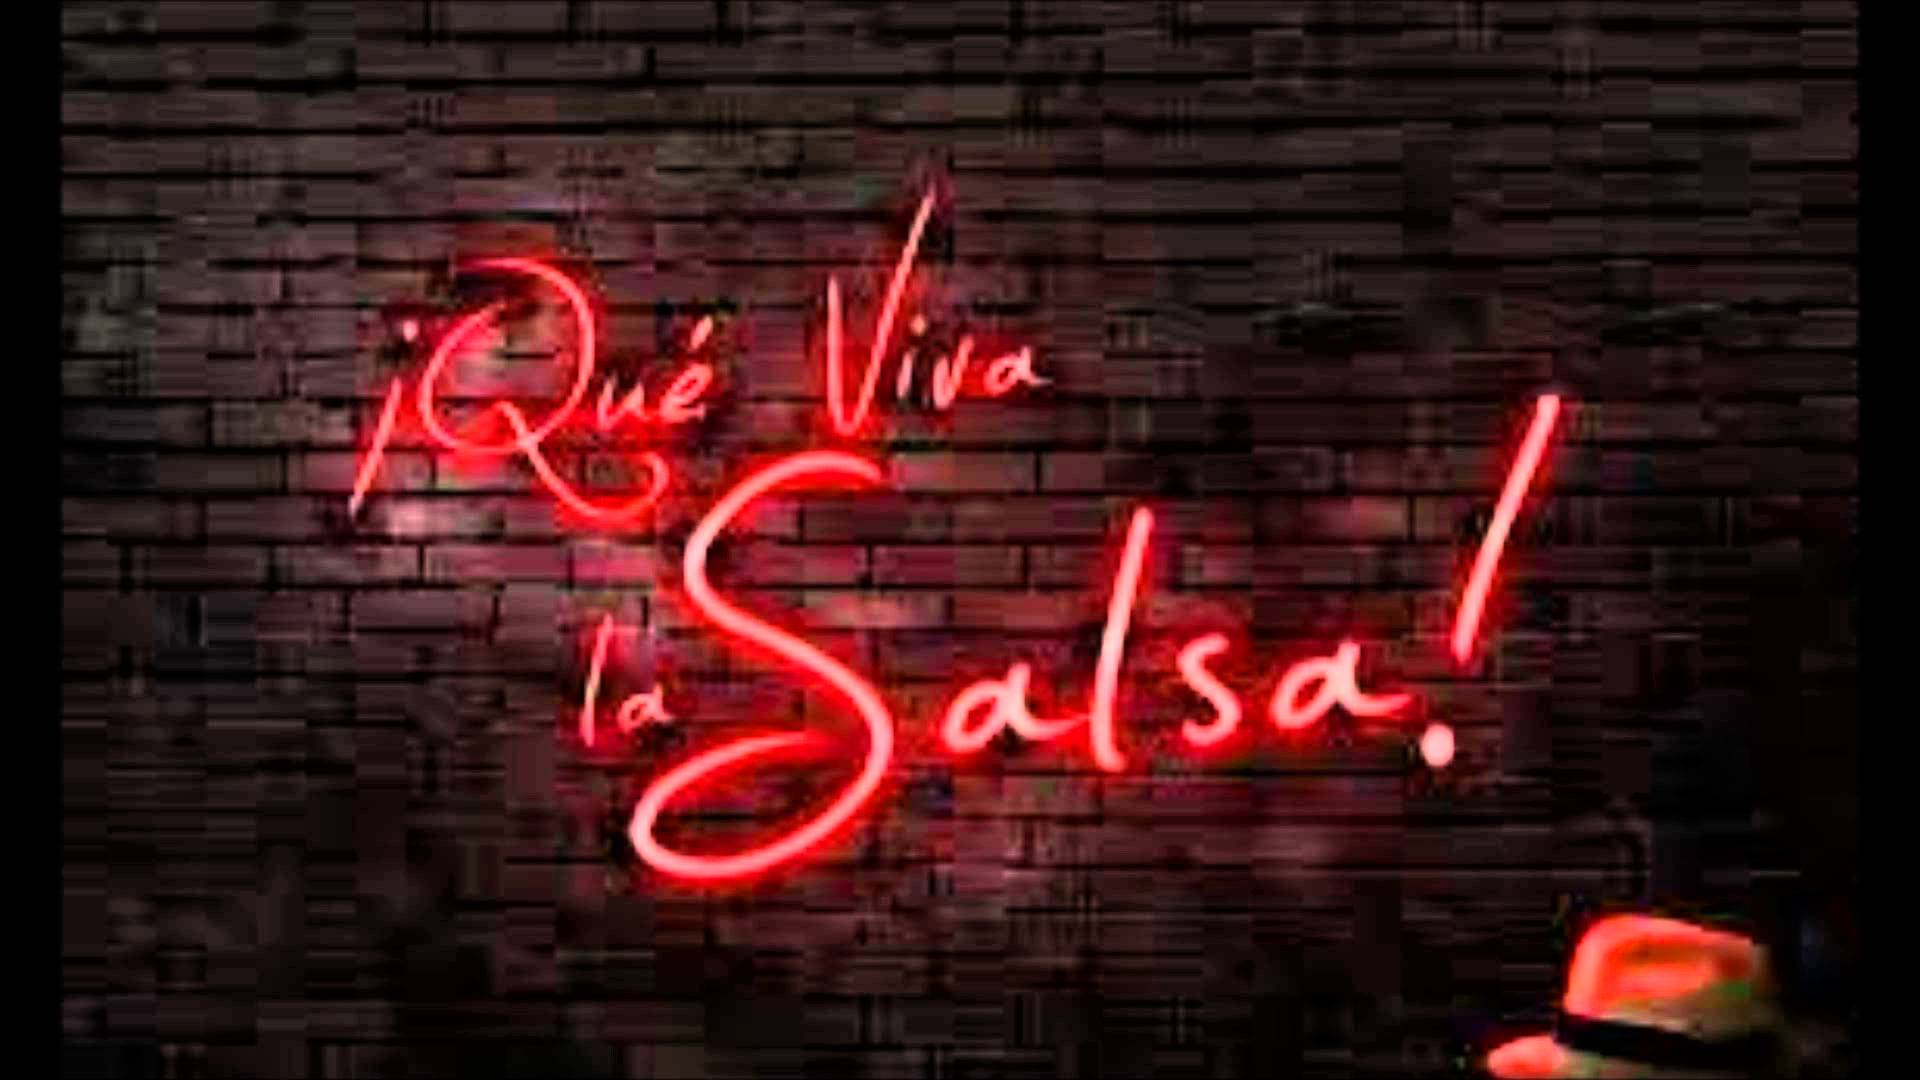 Best 48 Salsa Wallpaper on HipWallpaper Wallpaper Salsa Dancing 1920x1080